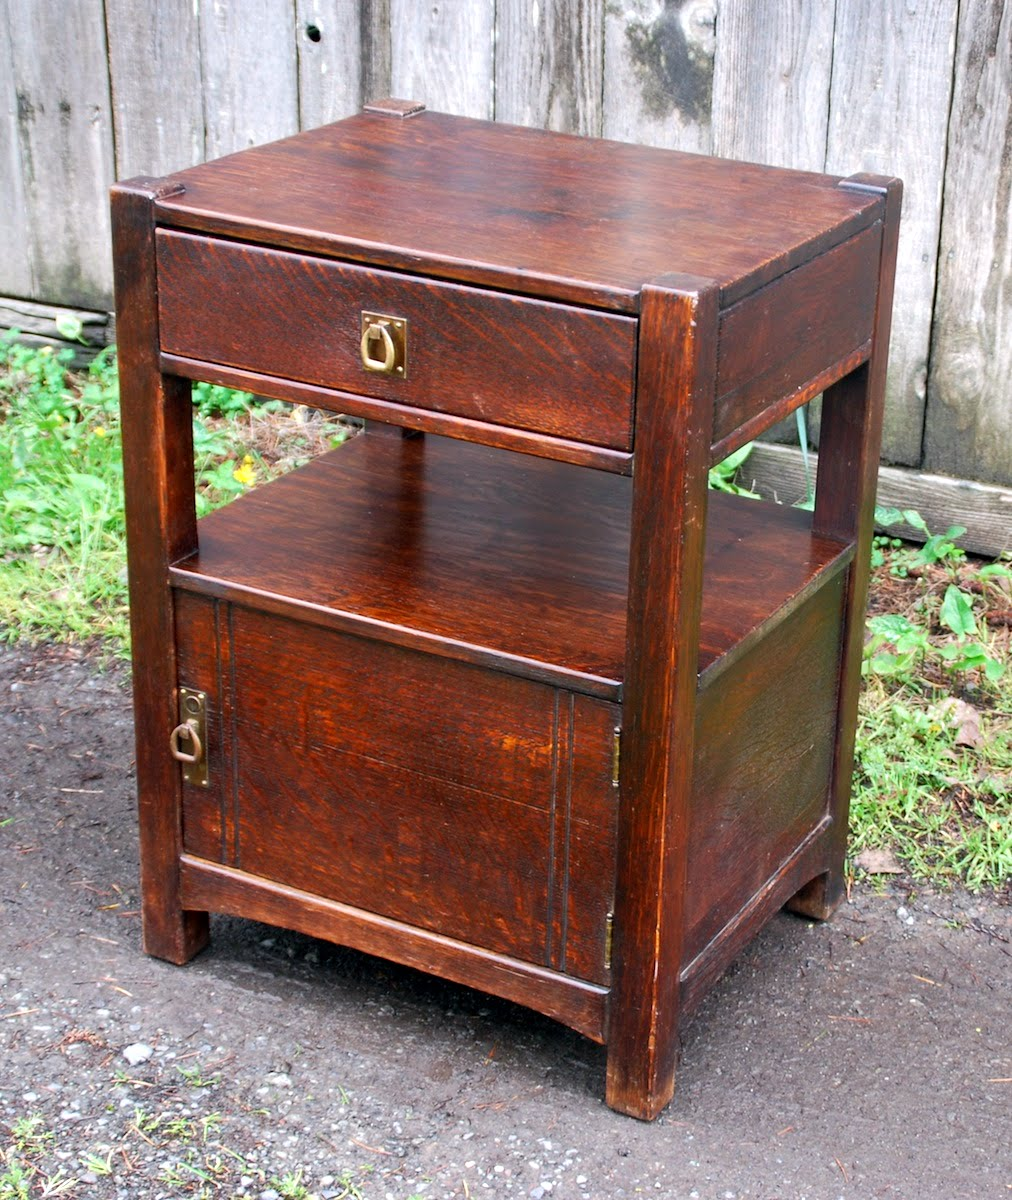 Period Limbert style oak safe, excellent as nightstand. Circa 1912 - Voorhees Craftsman Mission Oak Furniture - Period Limbert Style